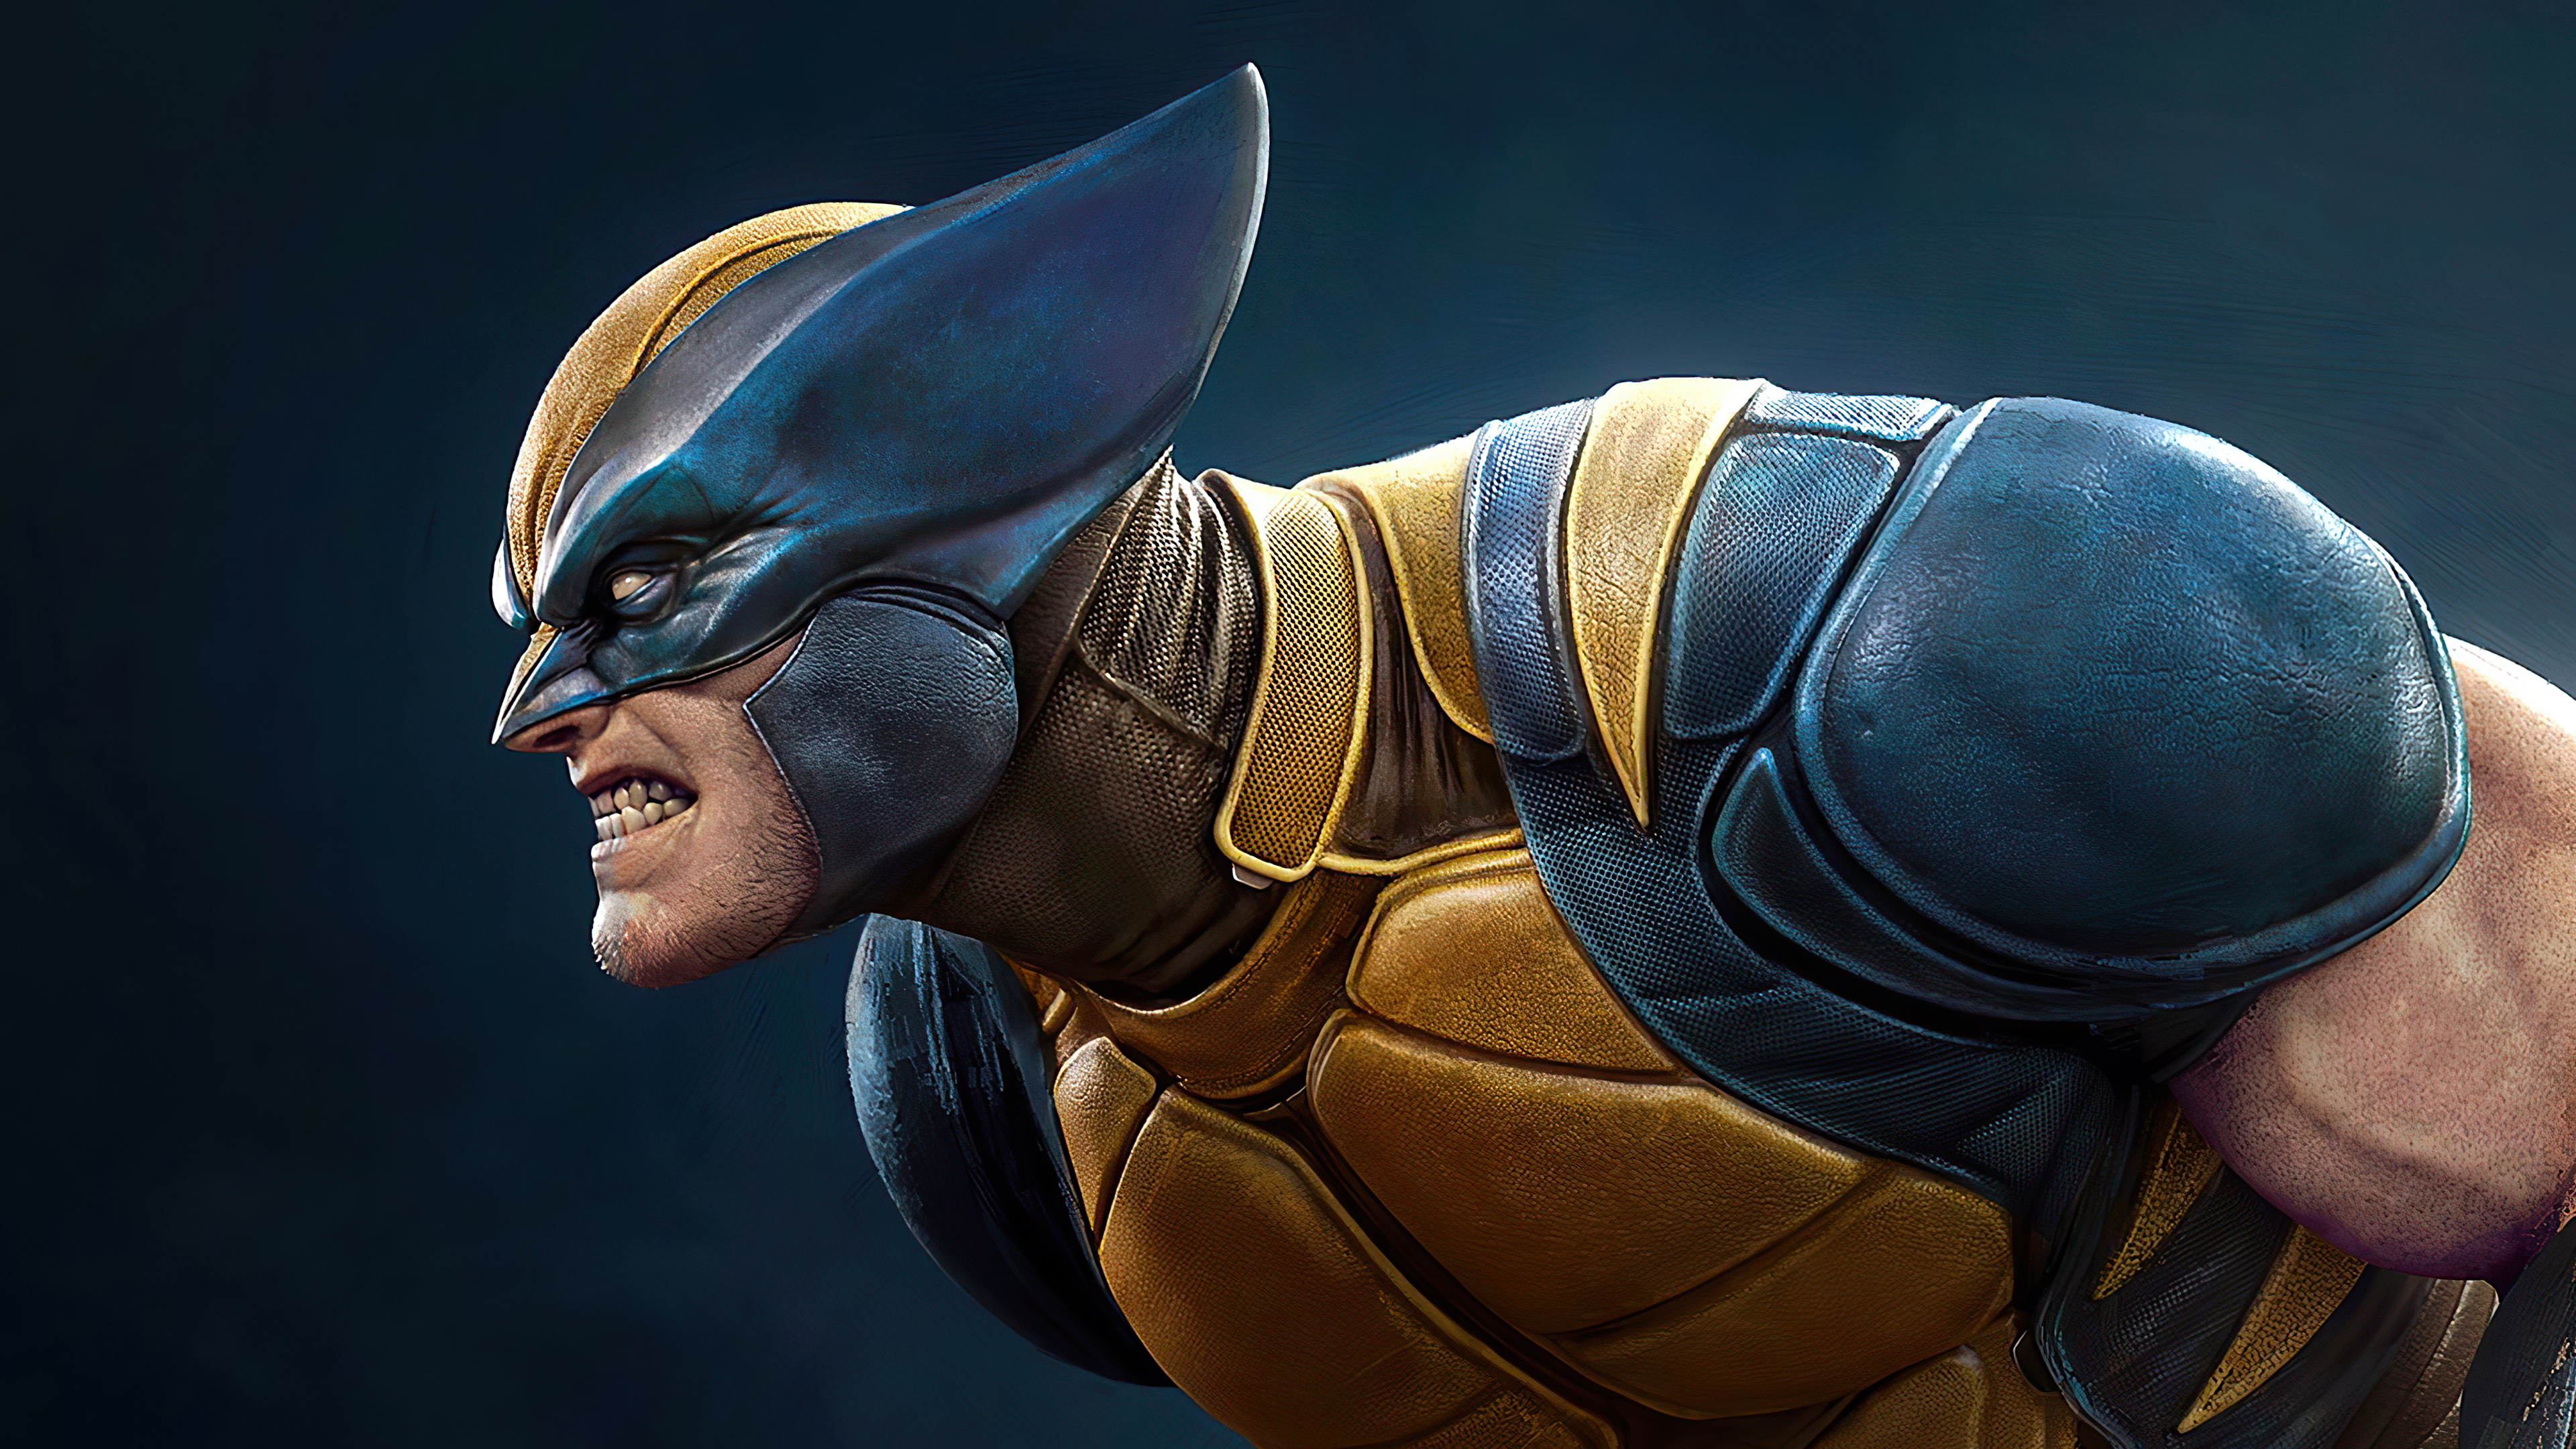 Fortnite Wolverine 4k Hd Games 4k Wallpapers Images Backgrounds Photos And Pictures